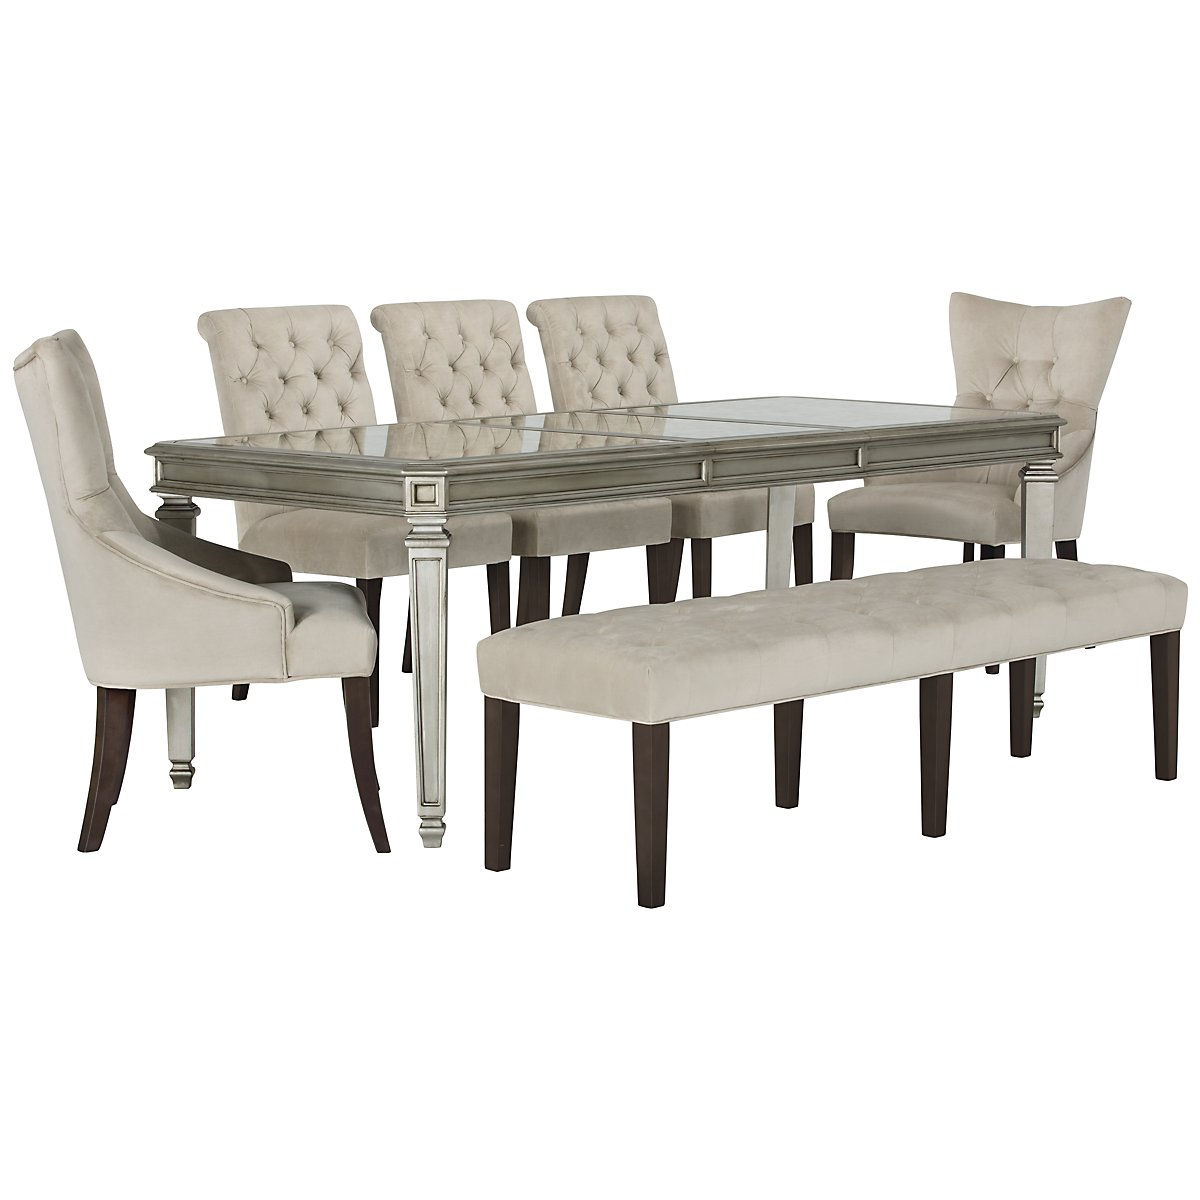 City Furniture: Sloane Lt Beige Rectangular Table, 4 Chairs & Bench